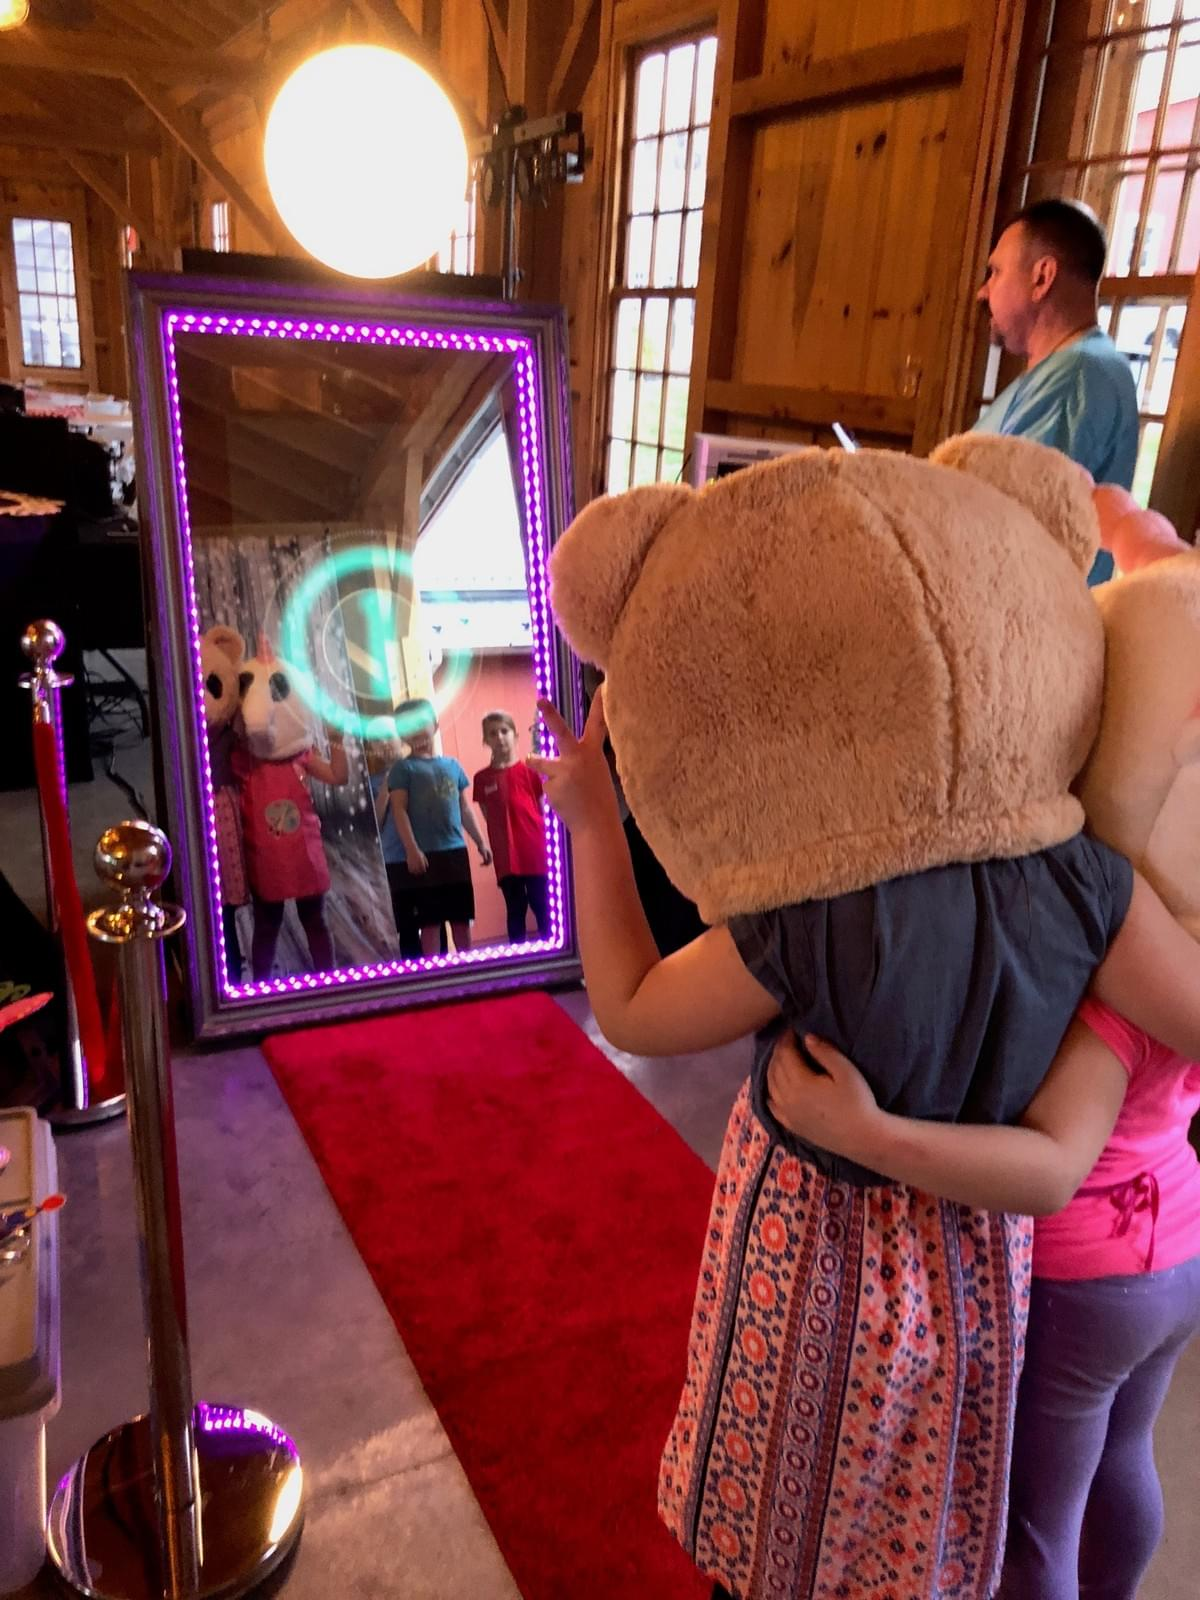 The Magic Selfie Mirror Photo Booth at Pond View Farm